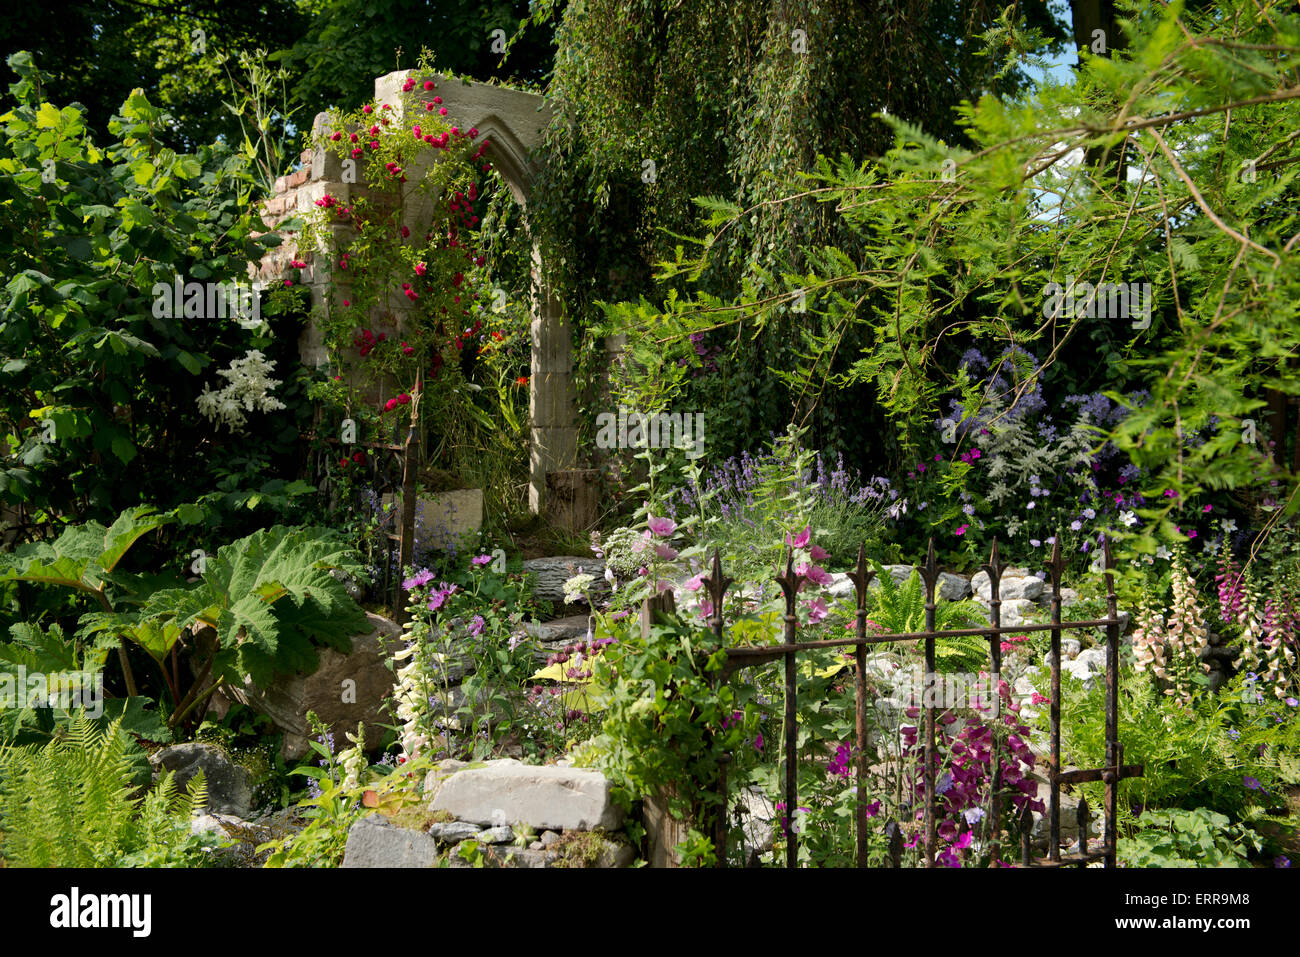 A stone arch surrounded by naturalistic planting in The Forgotten Folly Garden at The Hampton Court Flower Show, - Stock Image